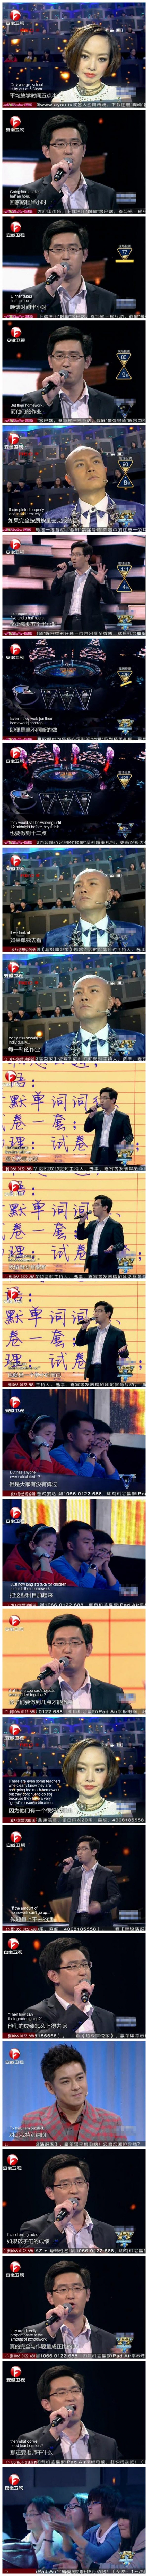 china-tv-speech-on-homework-translated